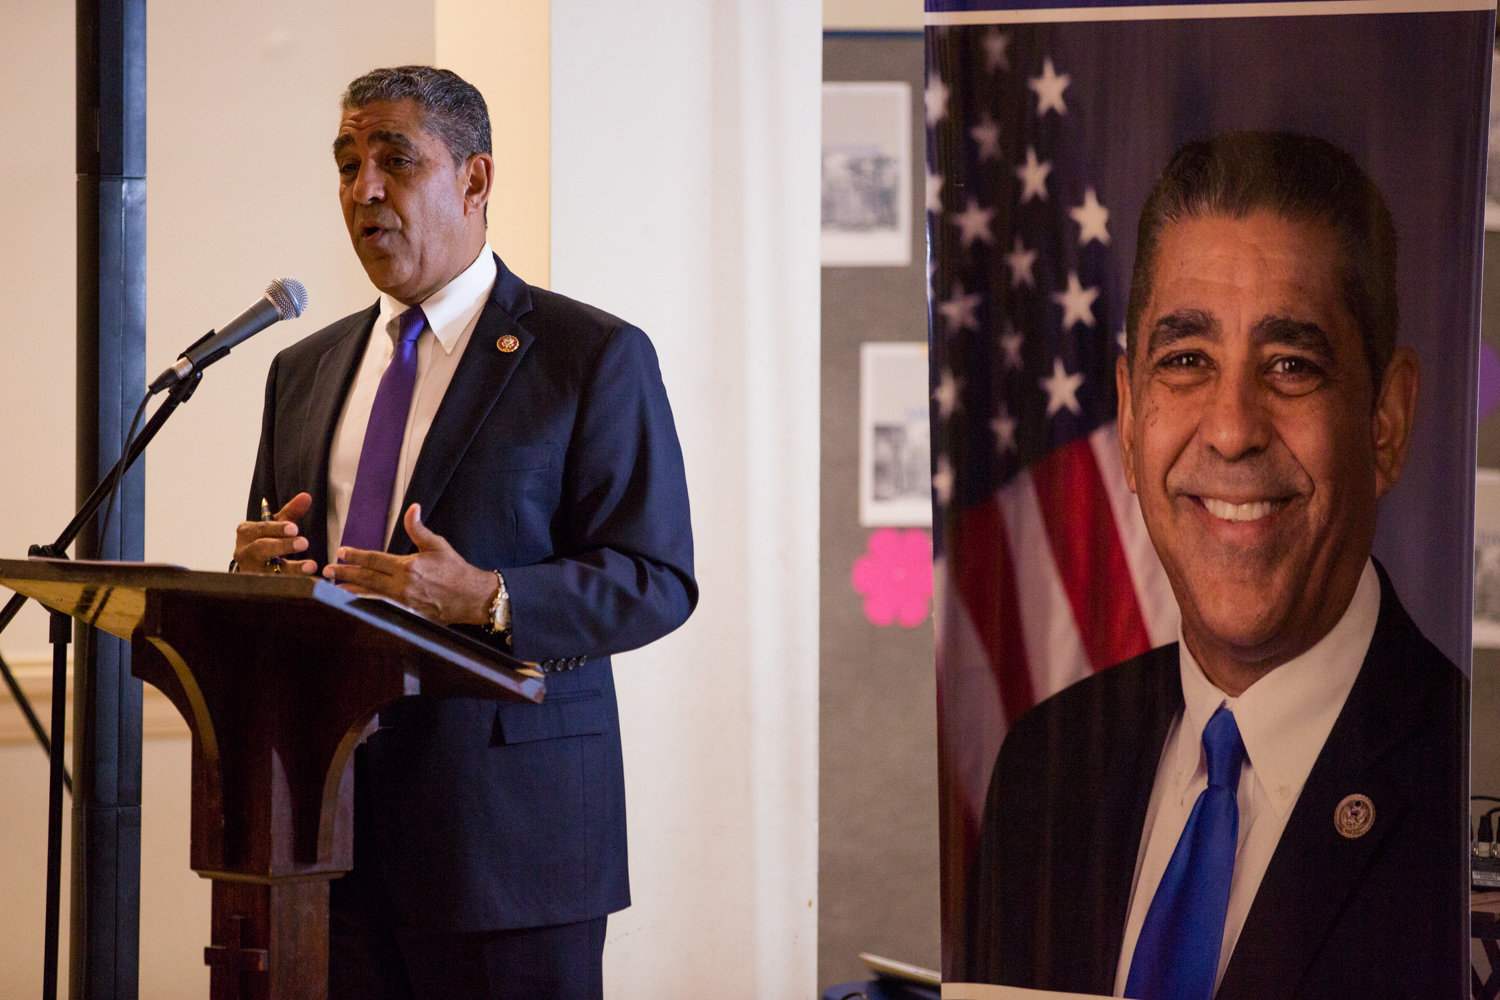 U.S. Rep. Adriano Espaillat makes the case for the impeachment of Donald Trump during an Oct. 7 forum at Fort Washington Collegiate Church.